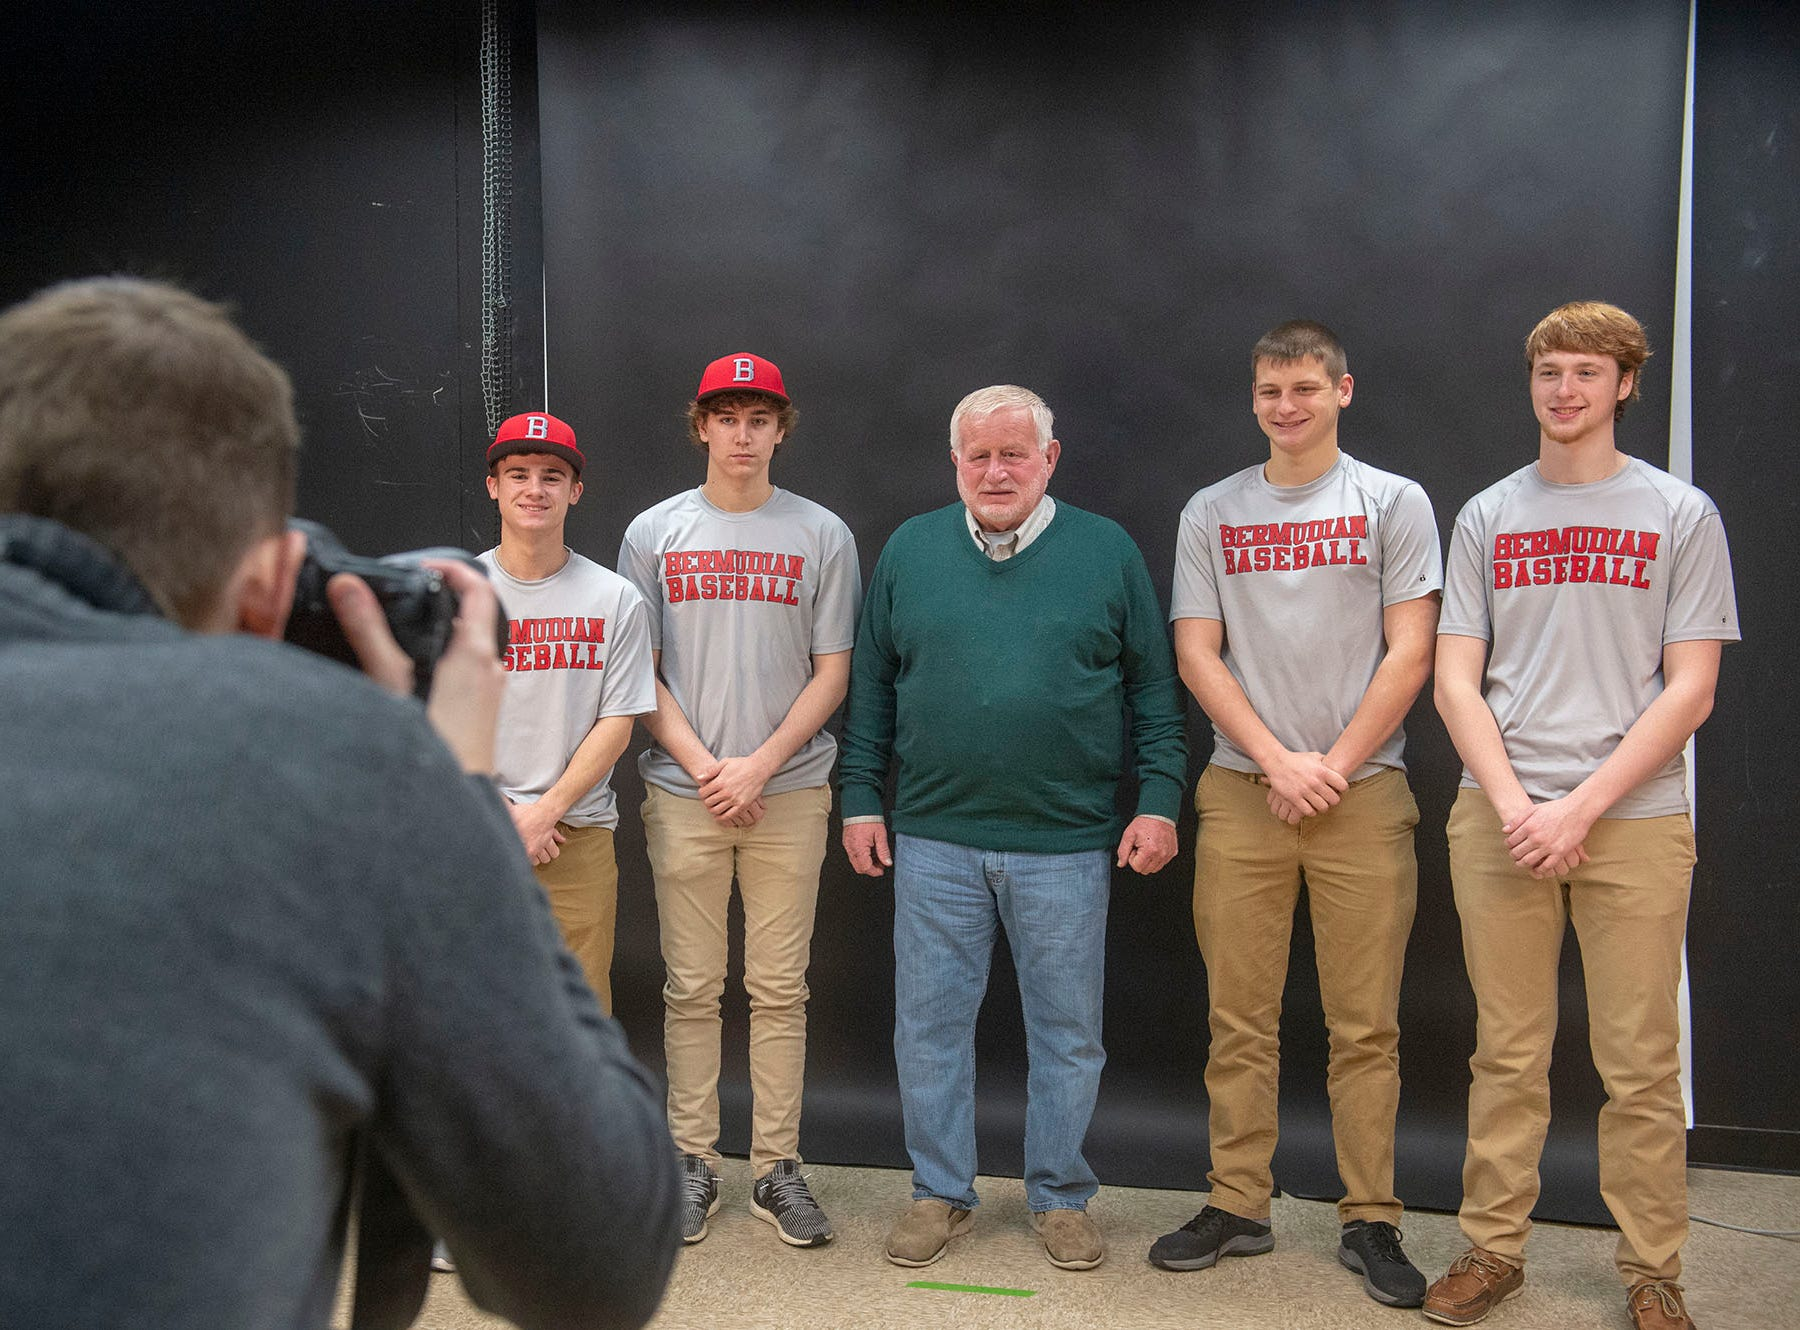 Bermudian Springs baseball players and coach Bruce Reinert get their photo taken by Dan Rainville at GameTimePA's Spring Media Day at the York Daily Record on Sunday, March 10, 2019.